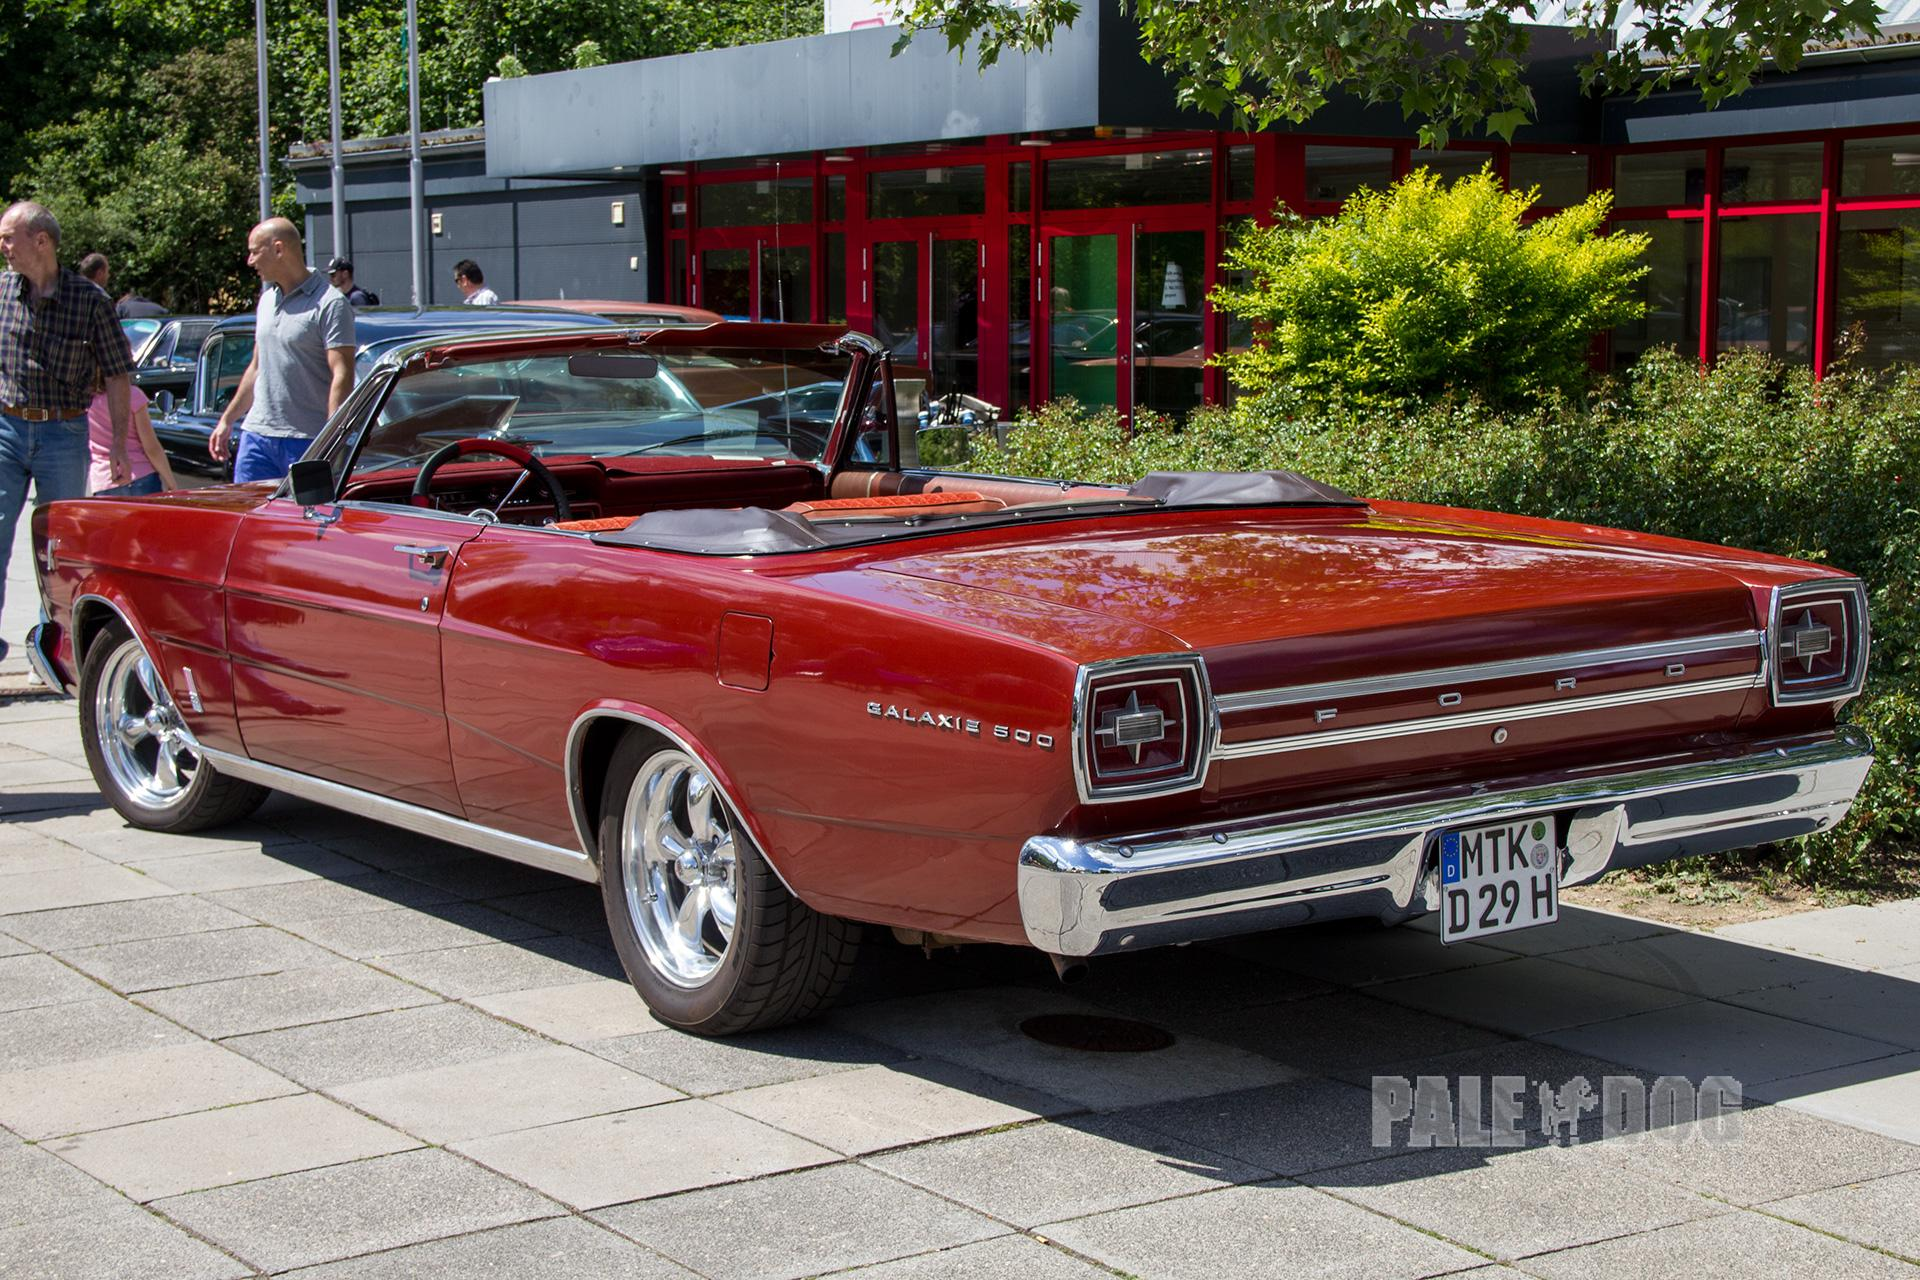 1966 Ford Galaxie 500 Convertible Rear View 1960s Paledog Photo Collection